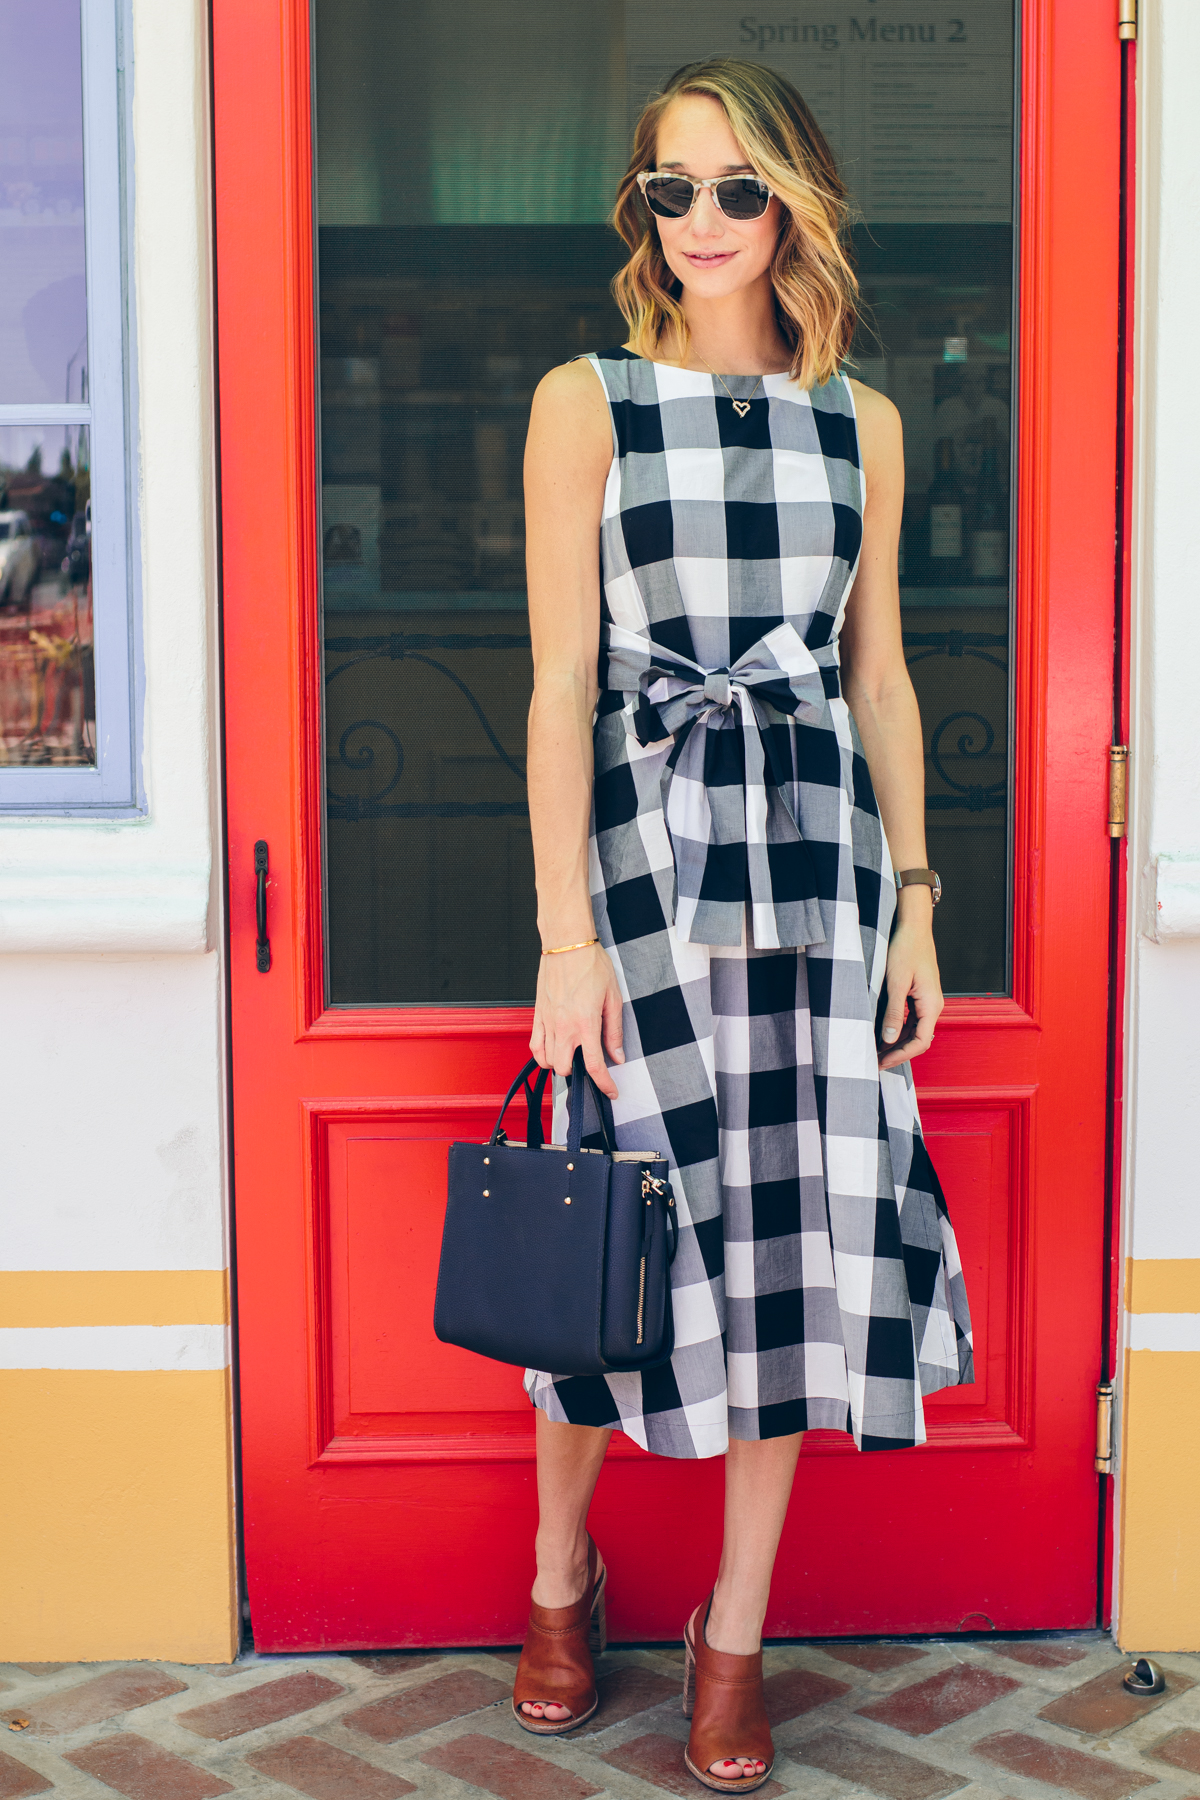 gingham wrap dress, mini bag, check dress — via @TheFoxandShe